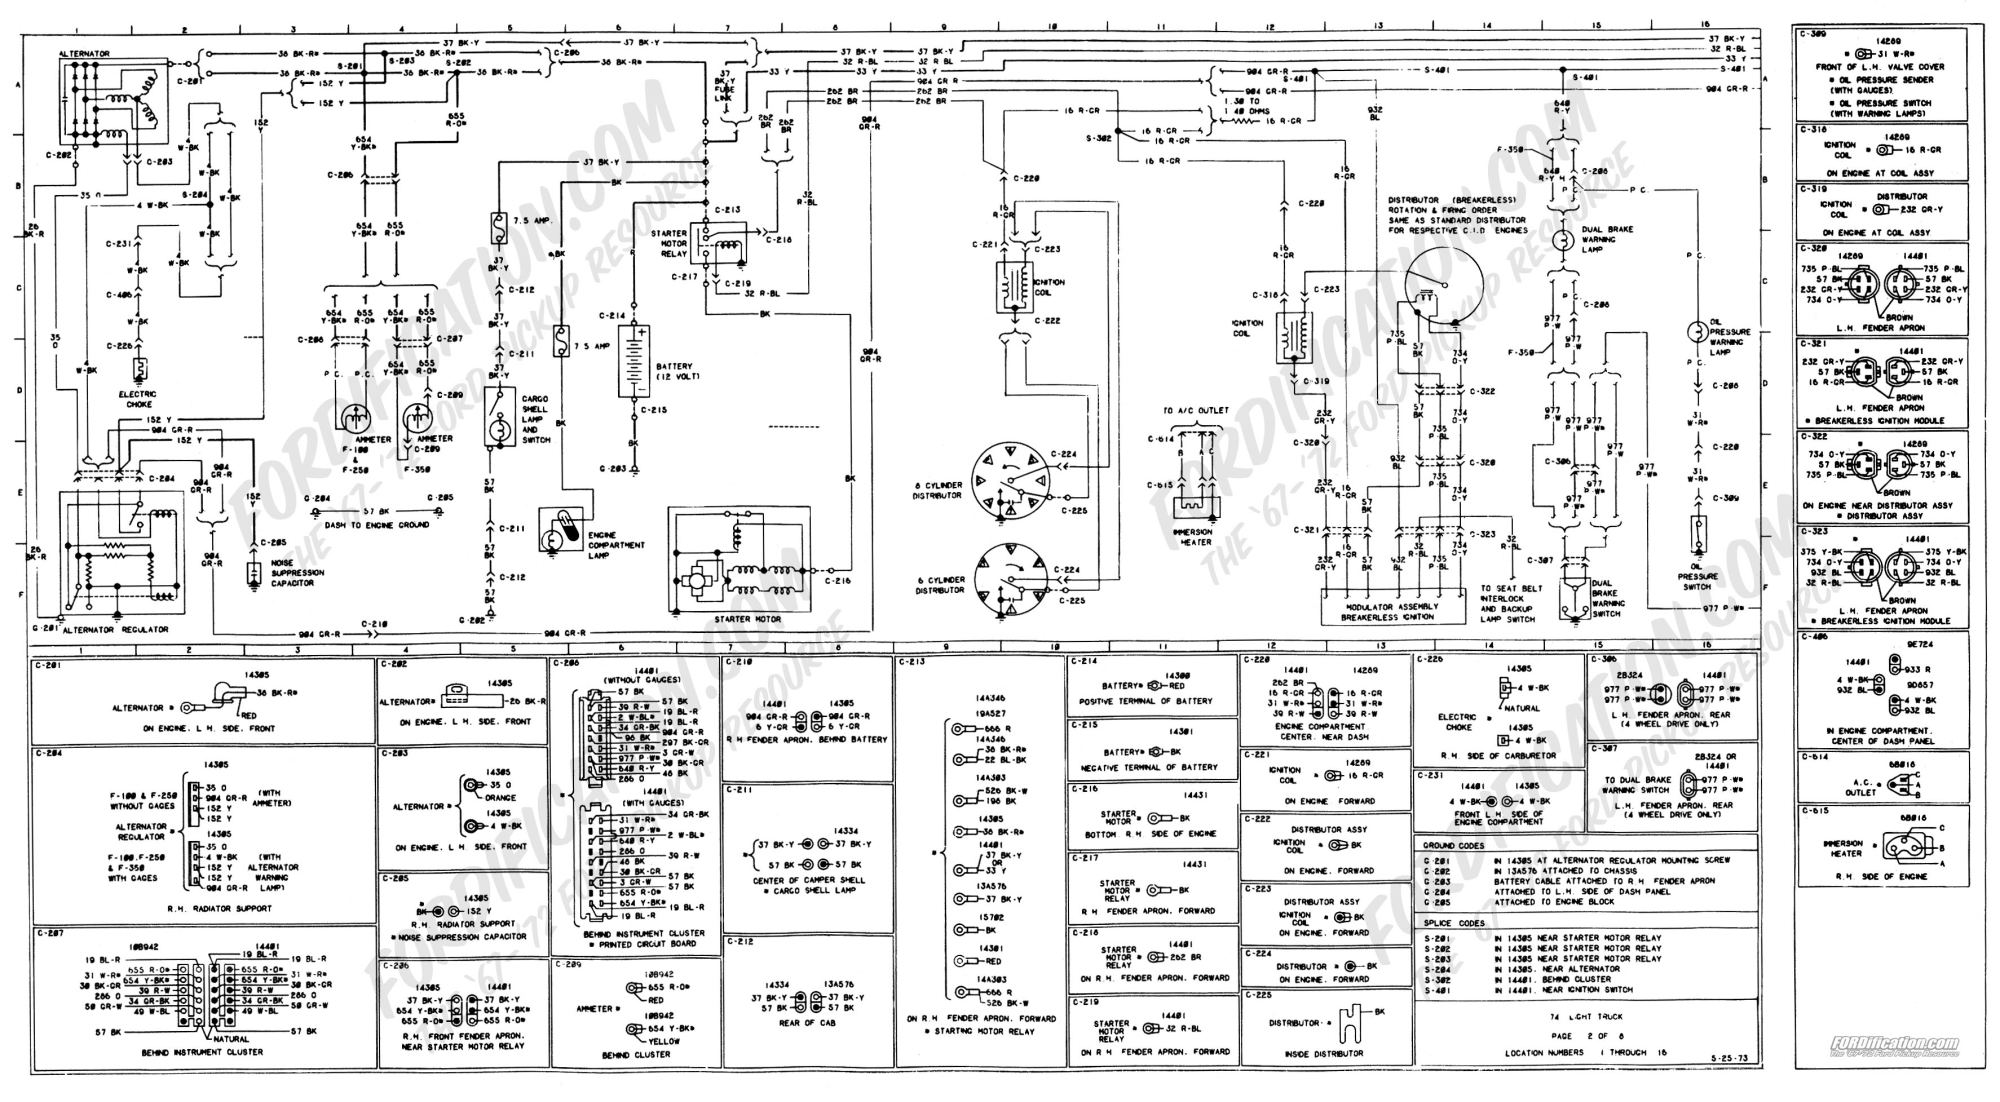 hight resolution of 1974 ford f100 wiring diagram wiring diagram source 67 f100 frame 1973 1979 ford truck wiring